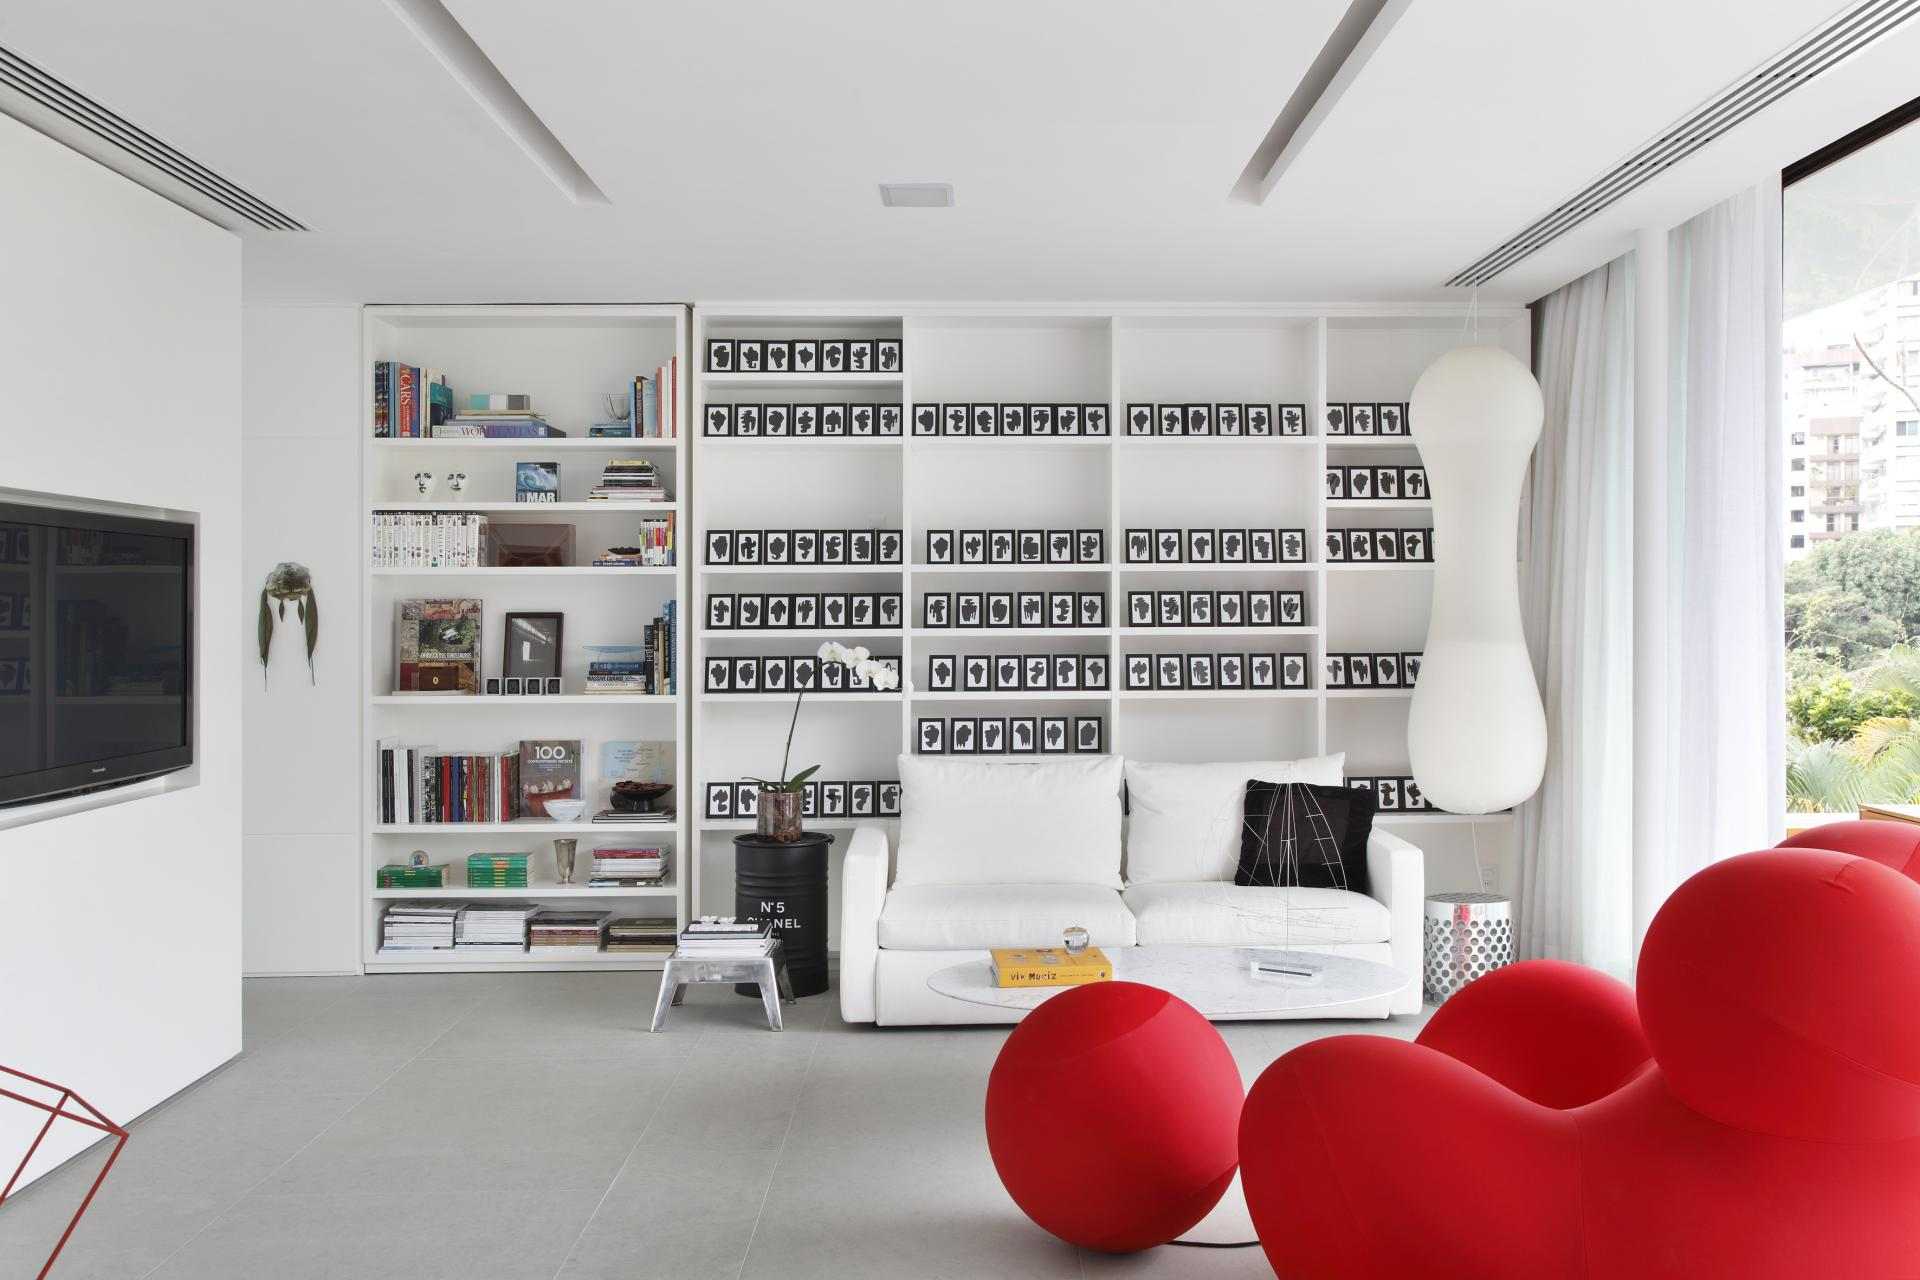 Merveilleux Interior Design For Dummies Contrast In Interior Design Black White Tones  Living Room With Bold Red